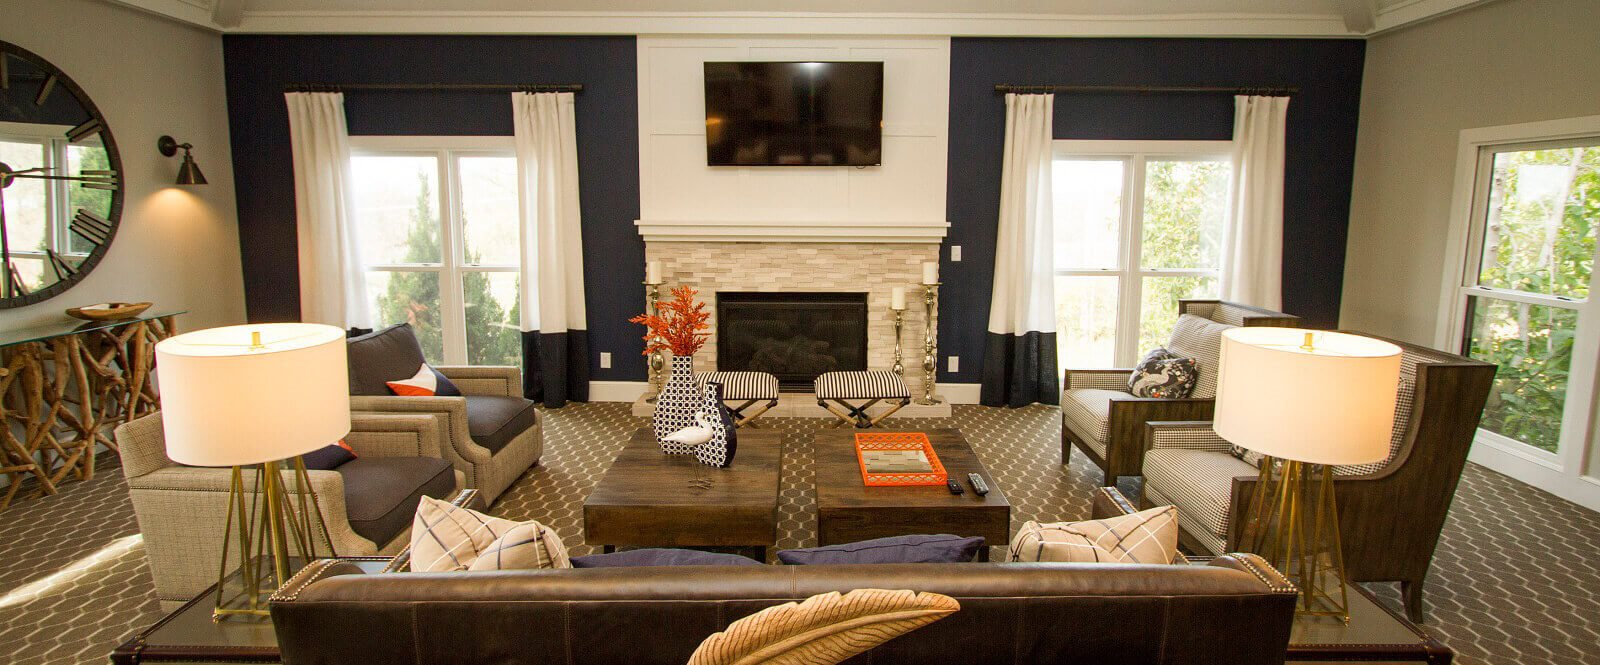 Large spacious and newly renovated Clubhouse just for our residents at Hampton Woods Apartments, Shawnee, KS 66217